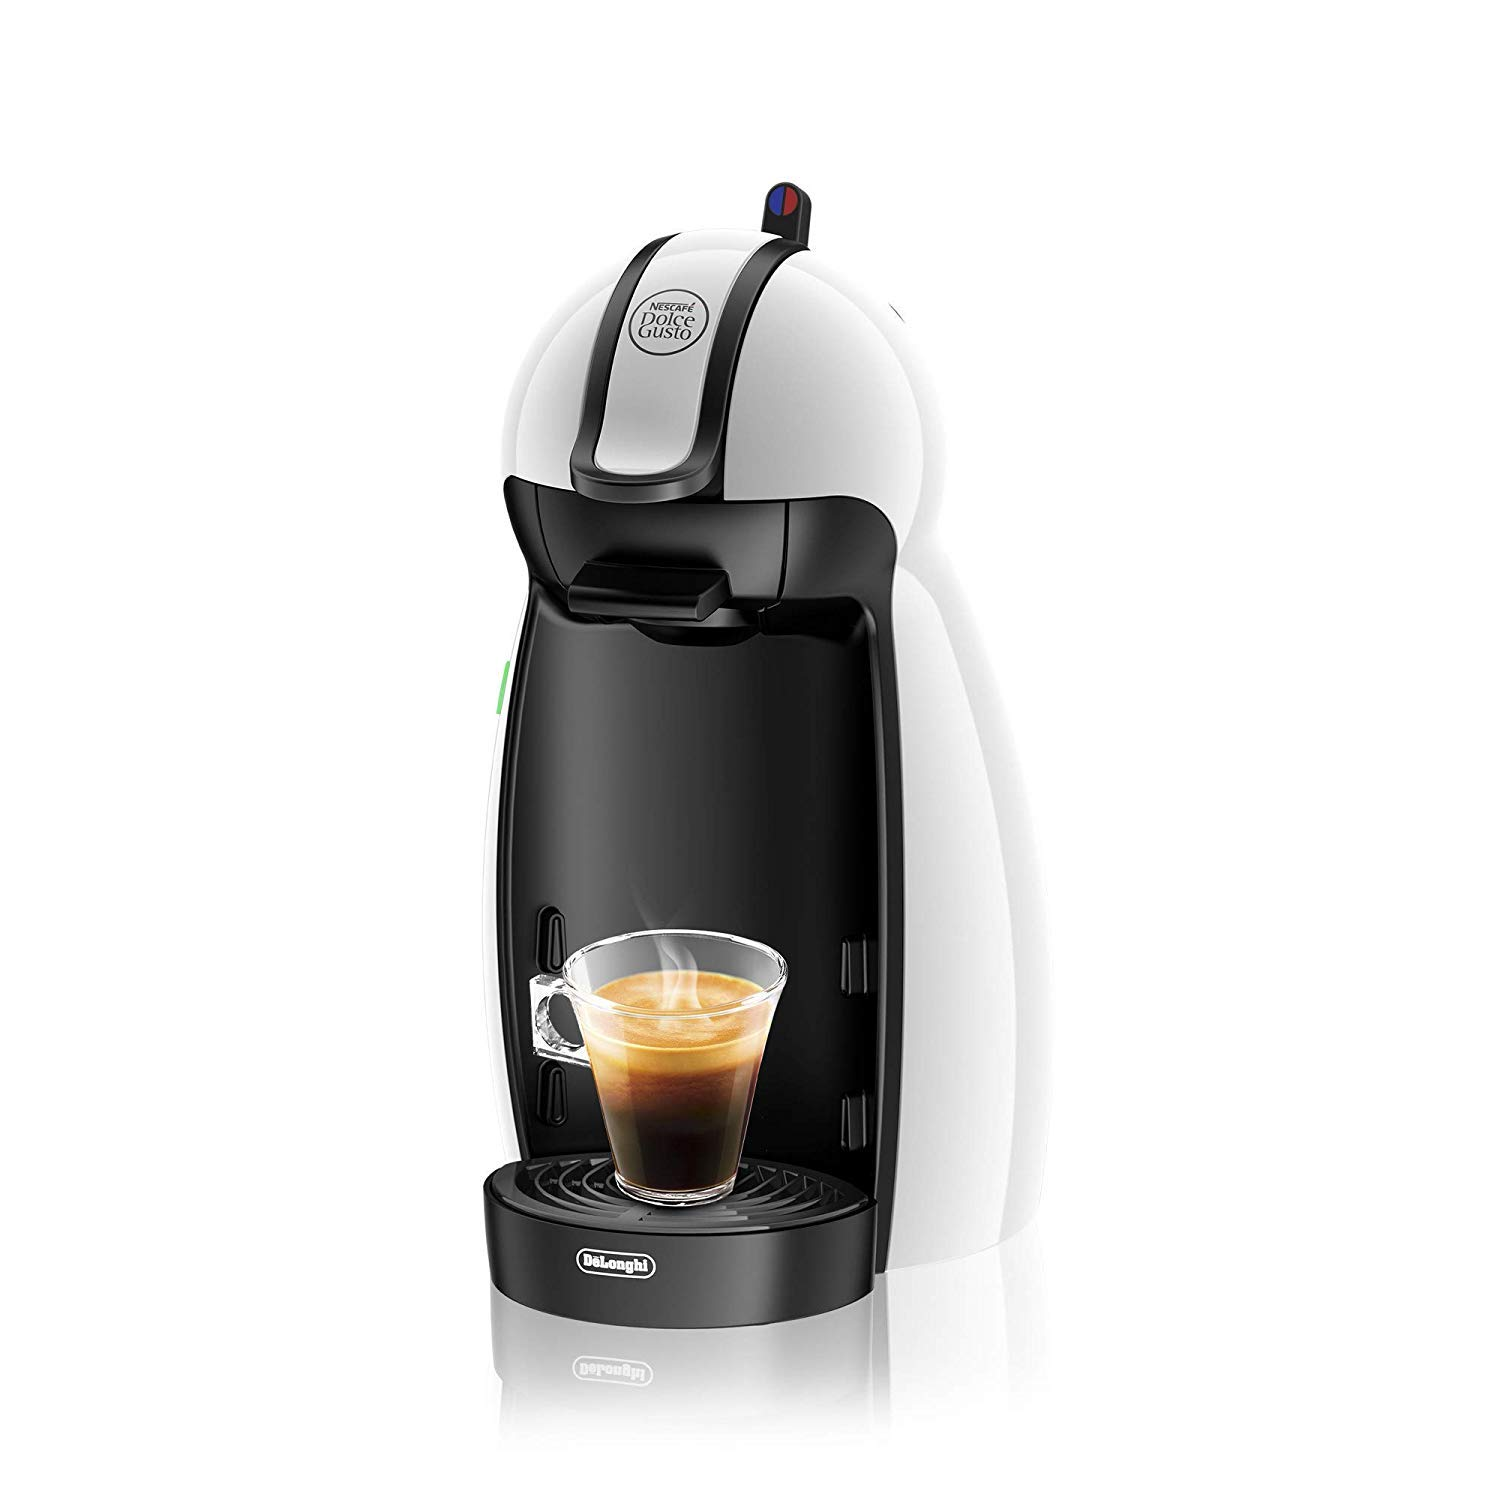 Nescafe Dolce Gusto cafetera, 1460 W, 0.6 litros, Acero Inoxidable ...